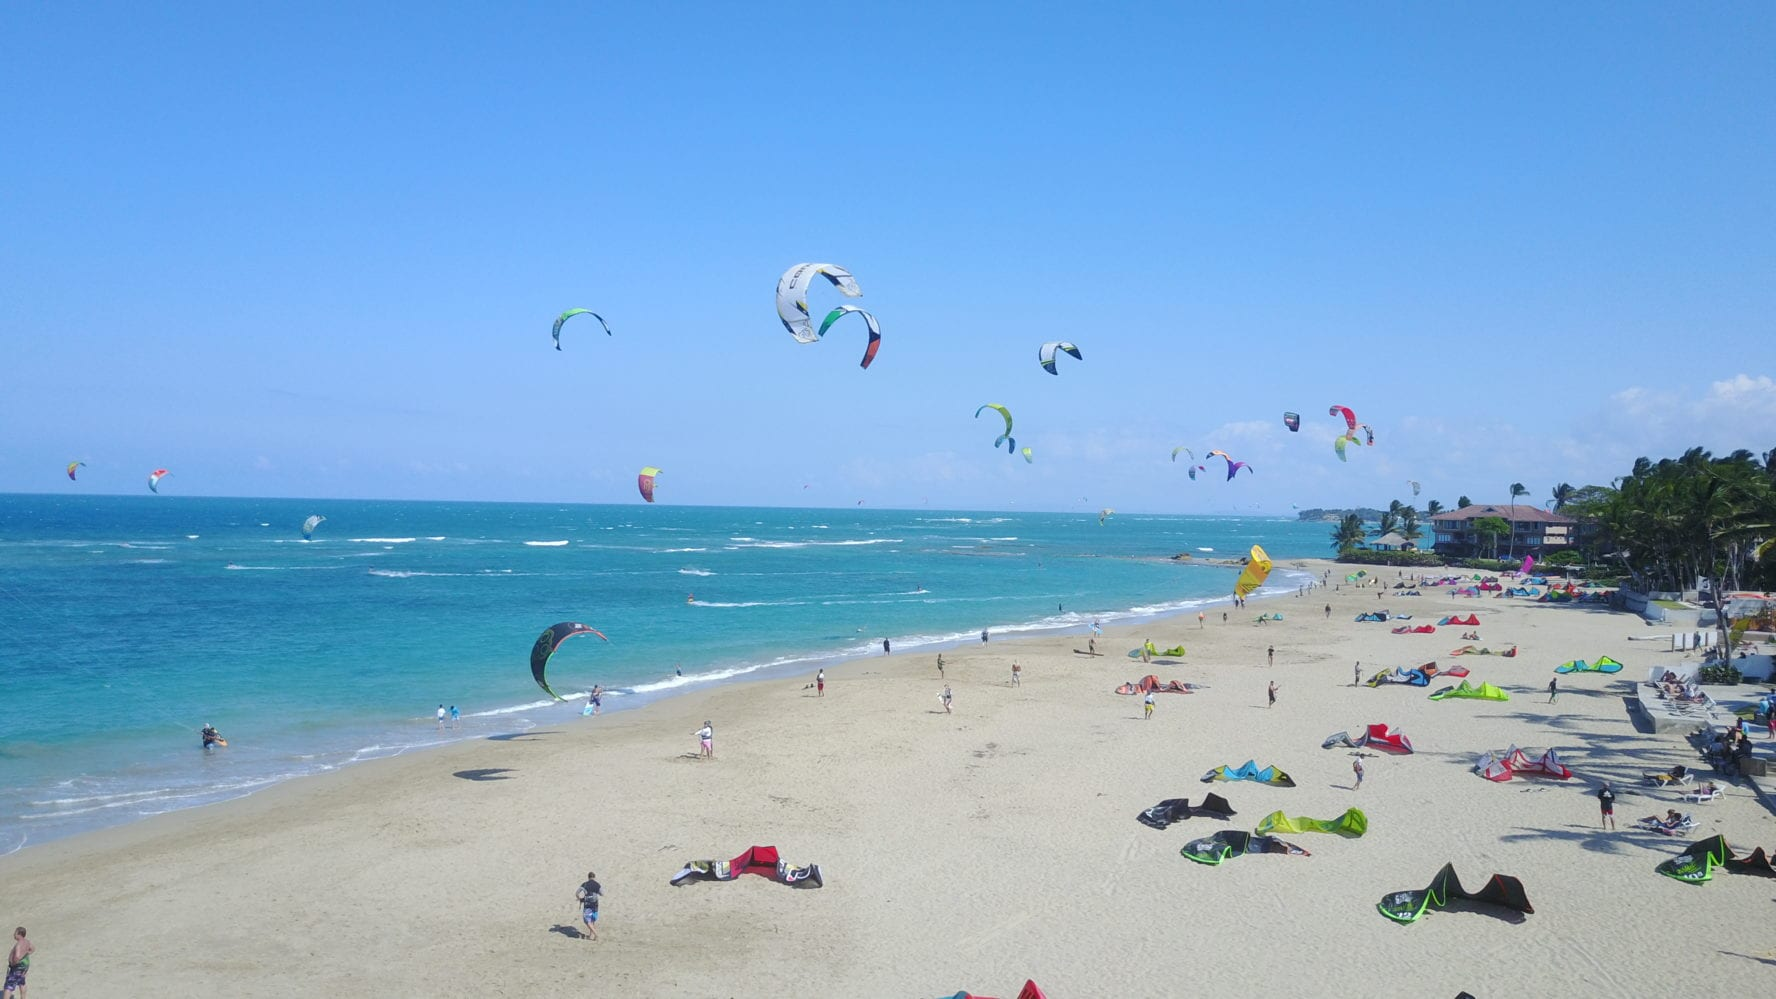 Kitesurfing in Dominican Republic